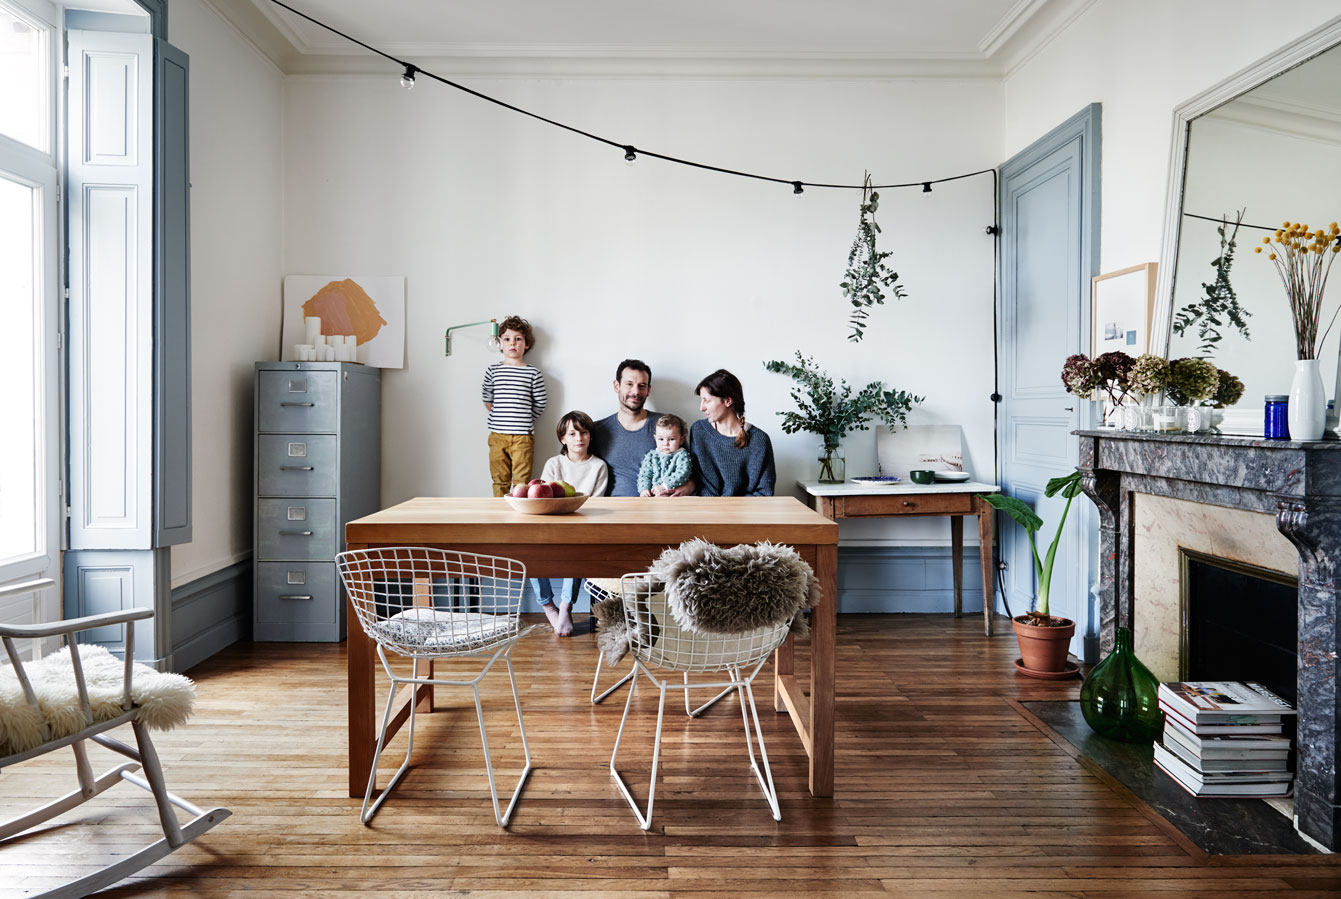 home-tour-kinfolk-retro-famille-mademoielle-claudine